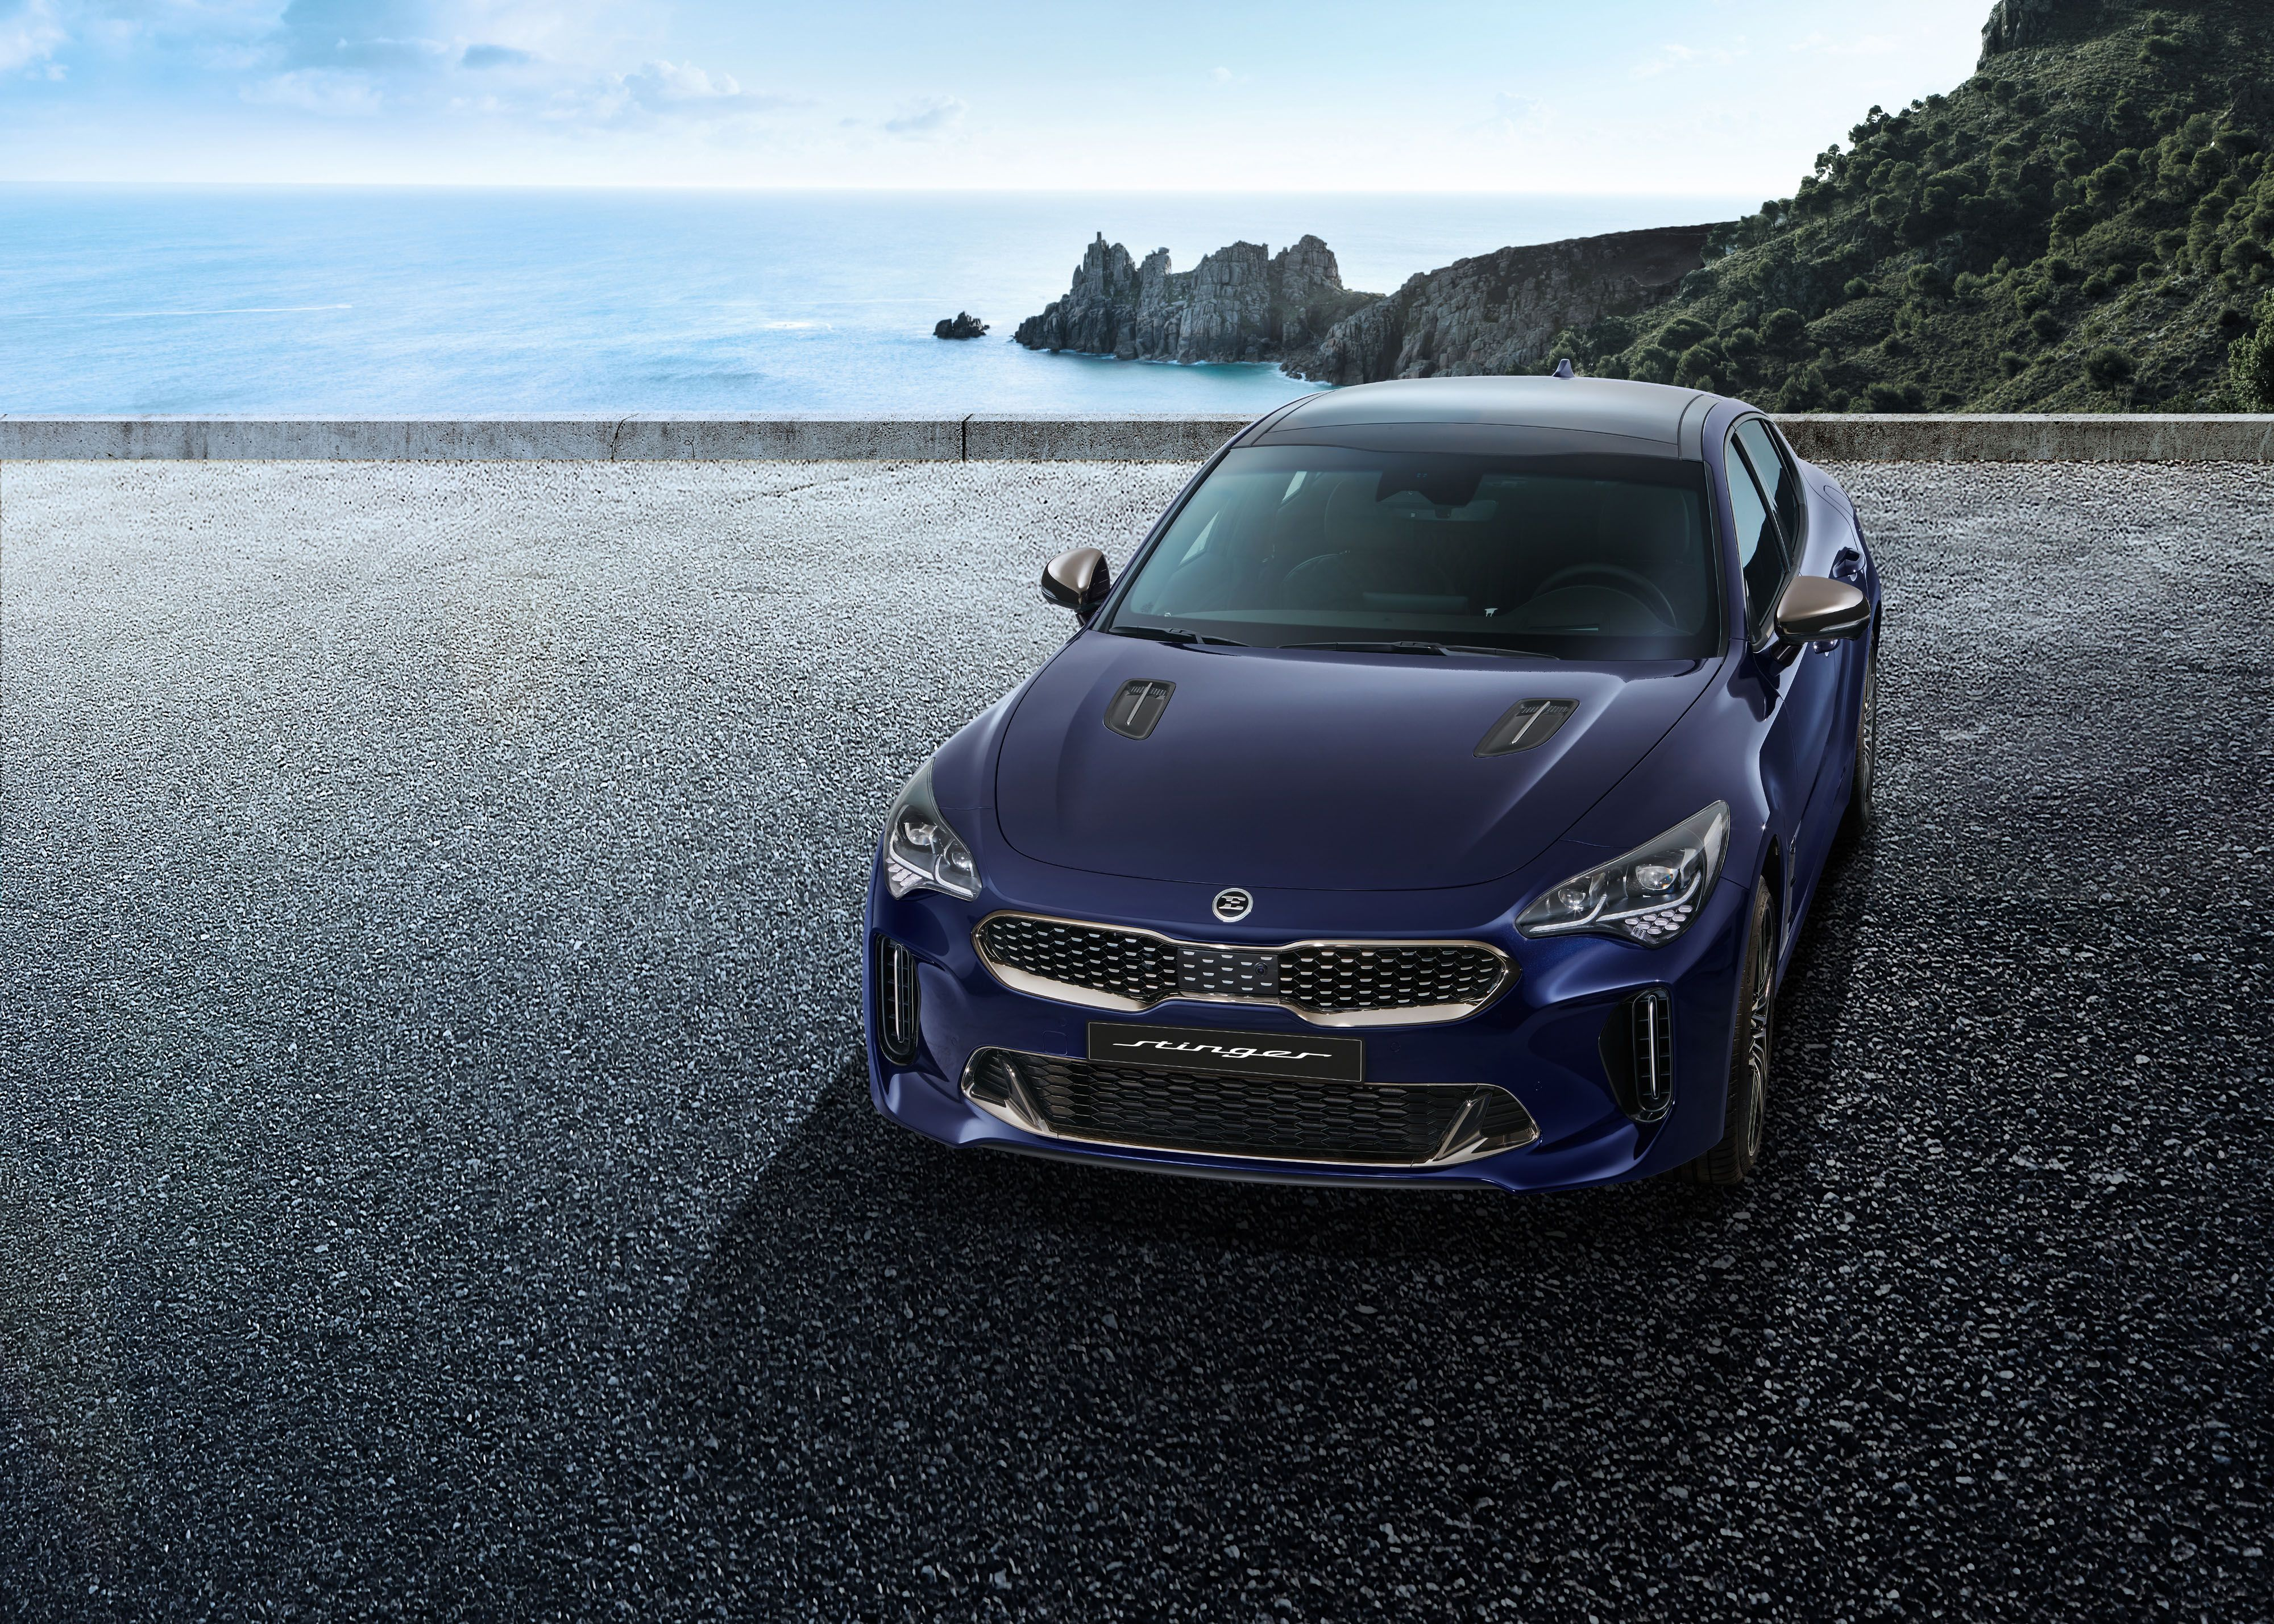 2022 Kia Stinger Revealed: More Power, More Styling, Still The Same Crazy Bargain Compared To The Competition